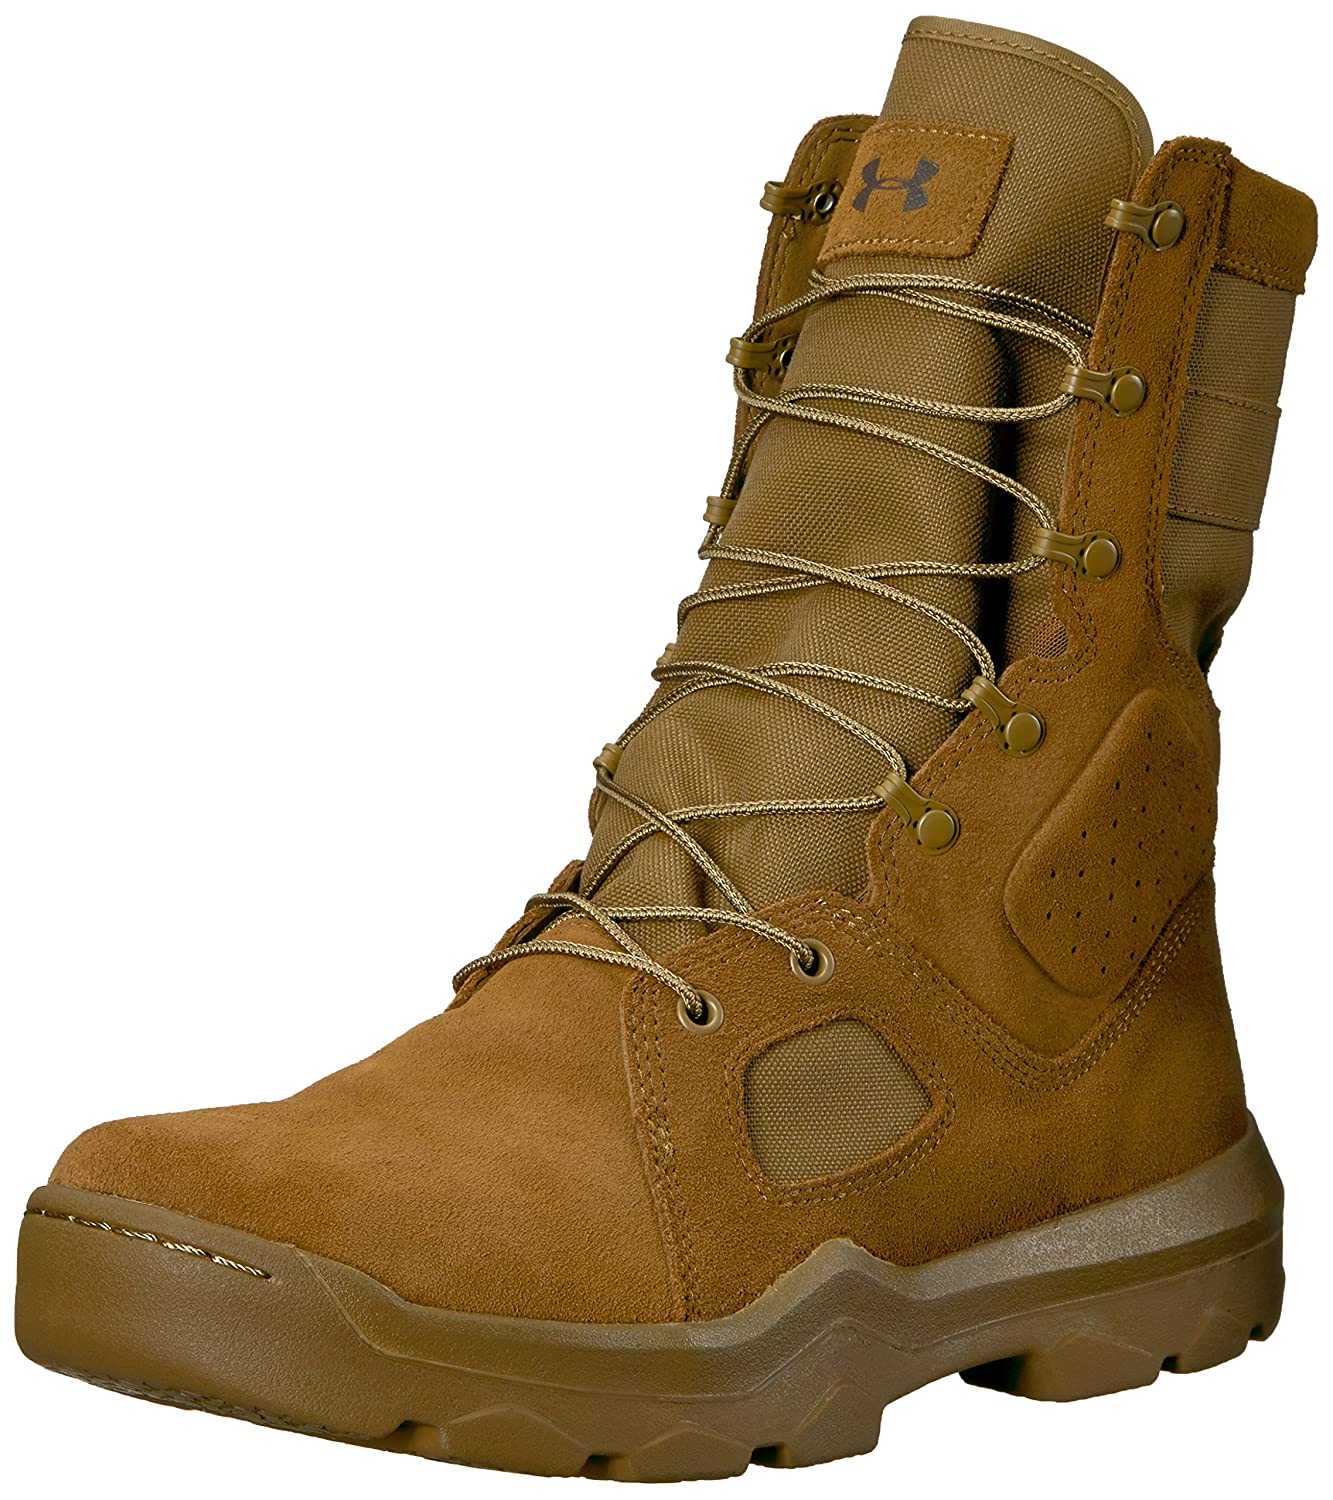 a8a34603 Under Armour Men's Fnp Military and Tactical Boot